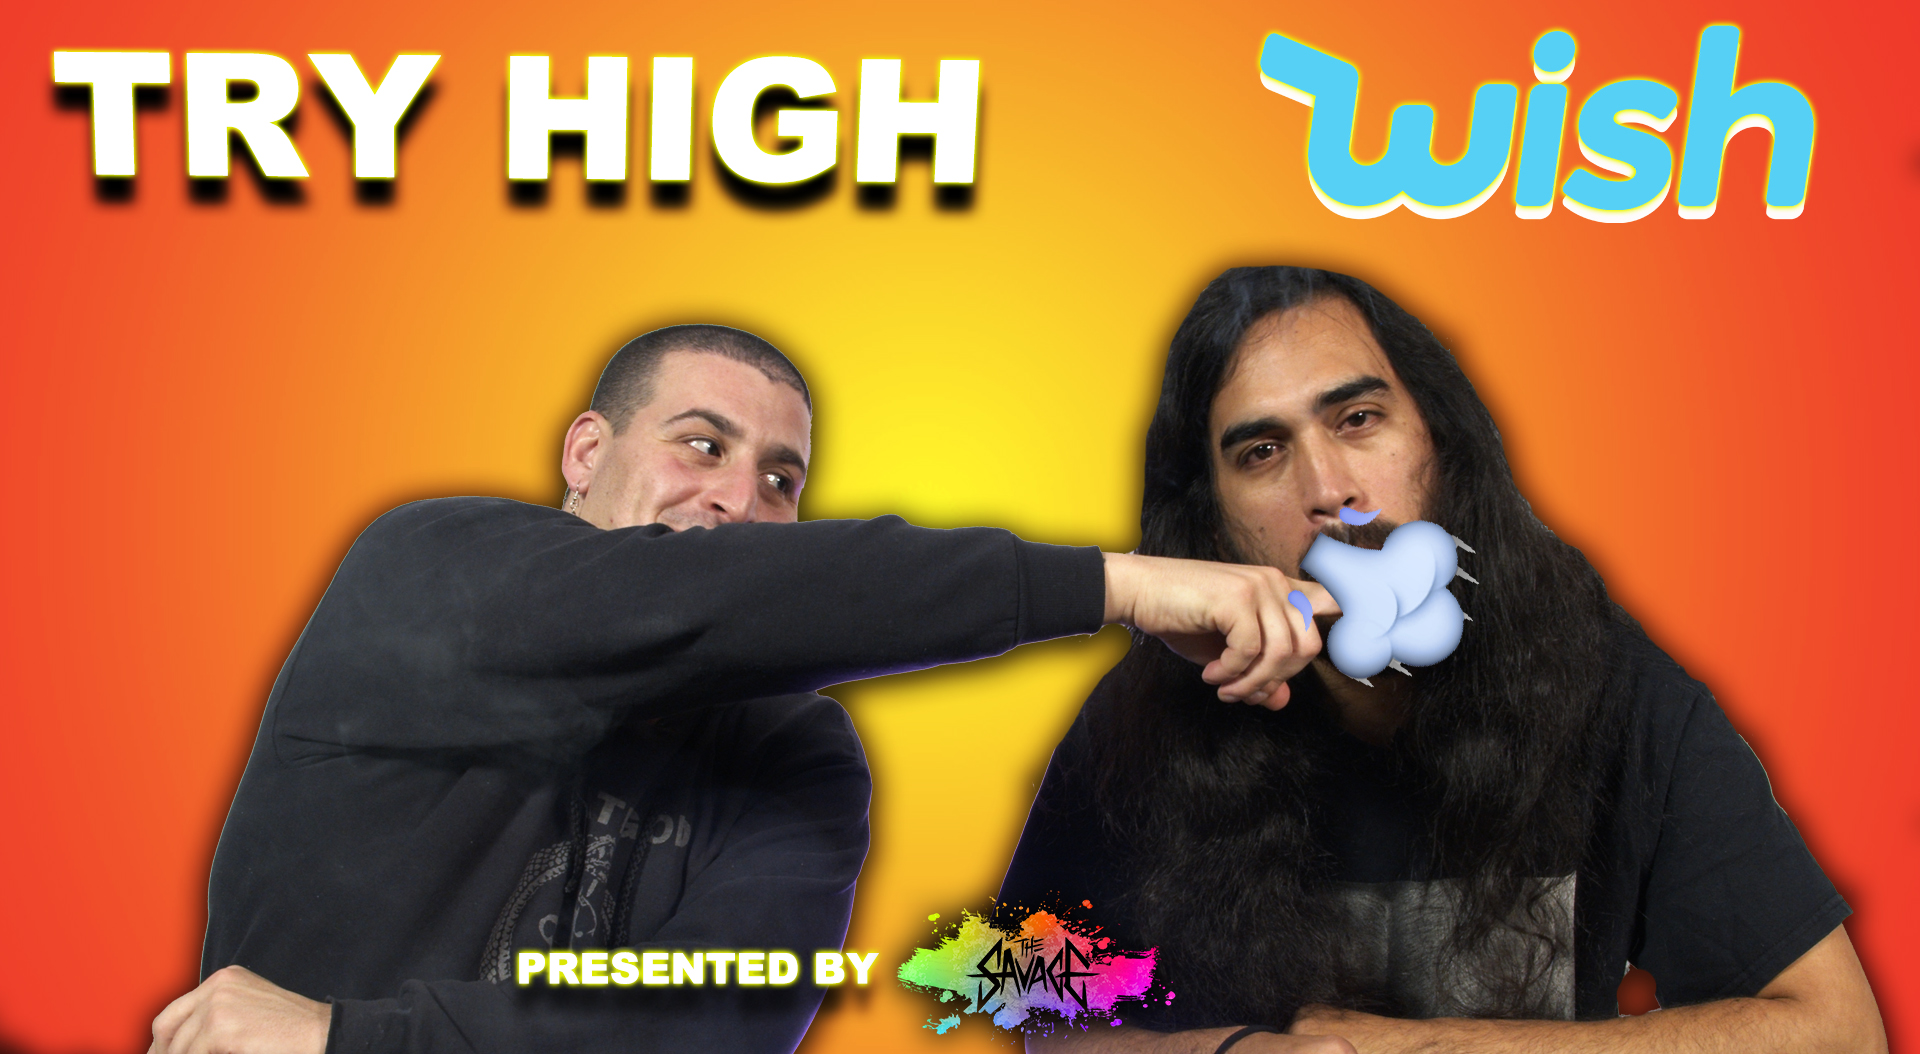 People Try a Weird Smoking Accessory from Wish | TRY HIGH